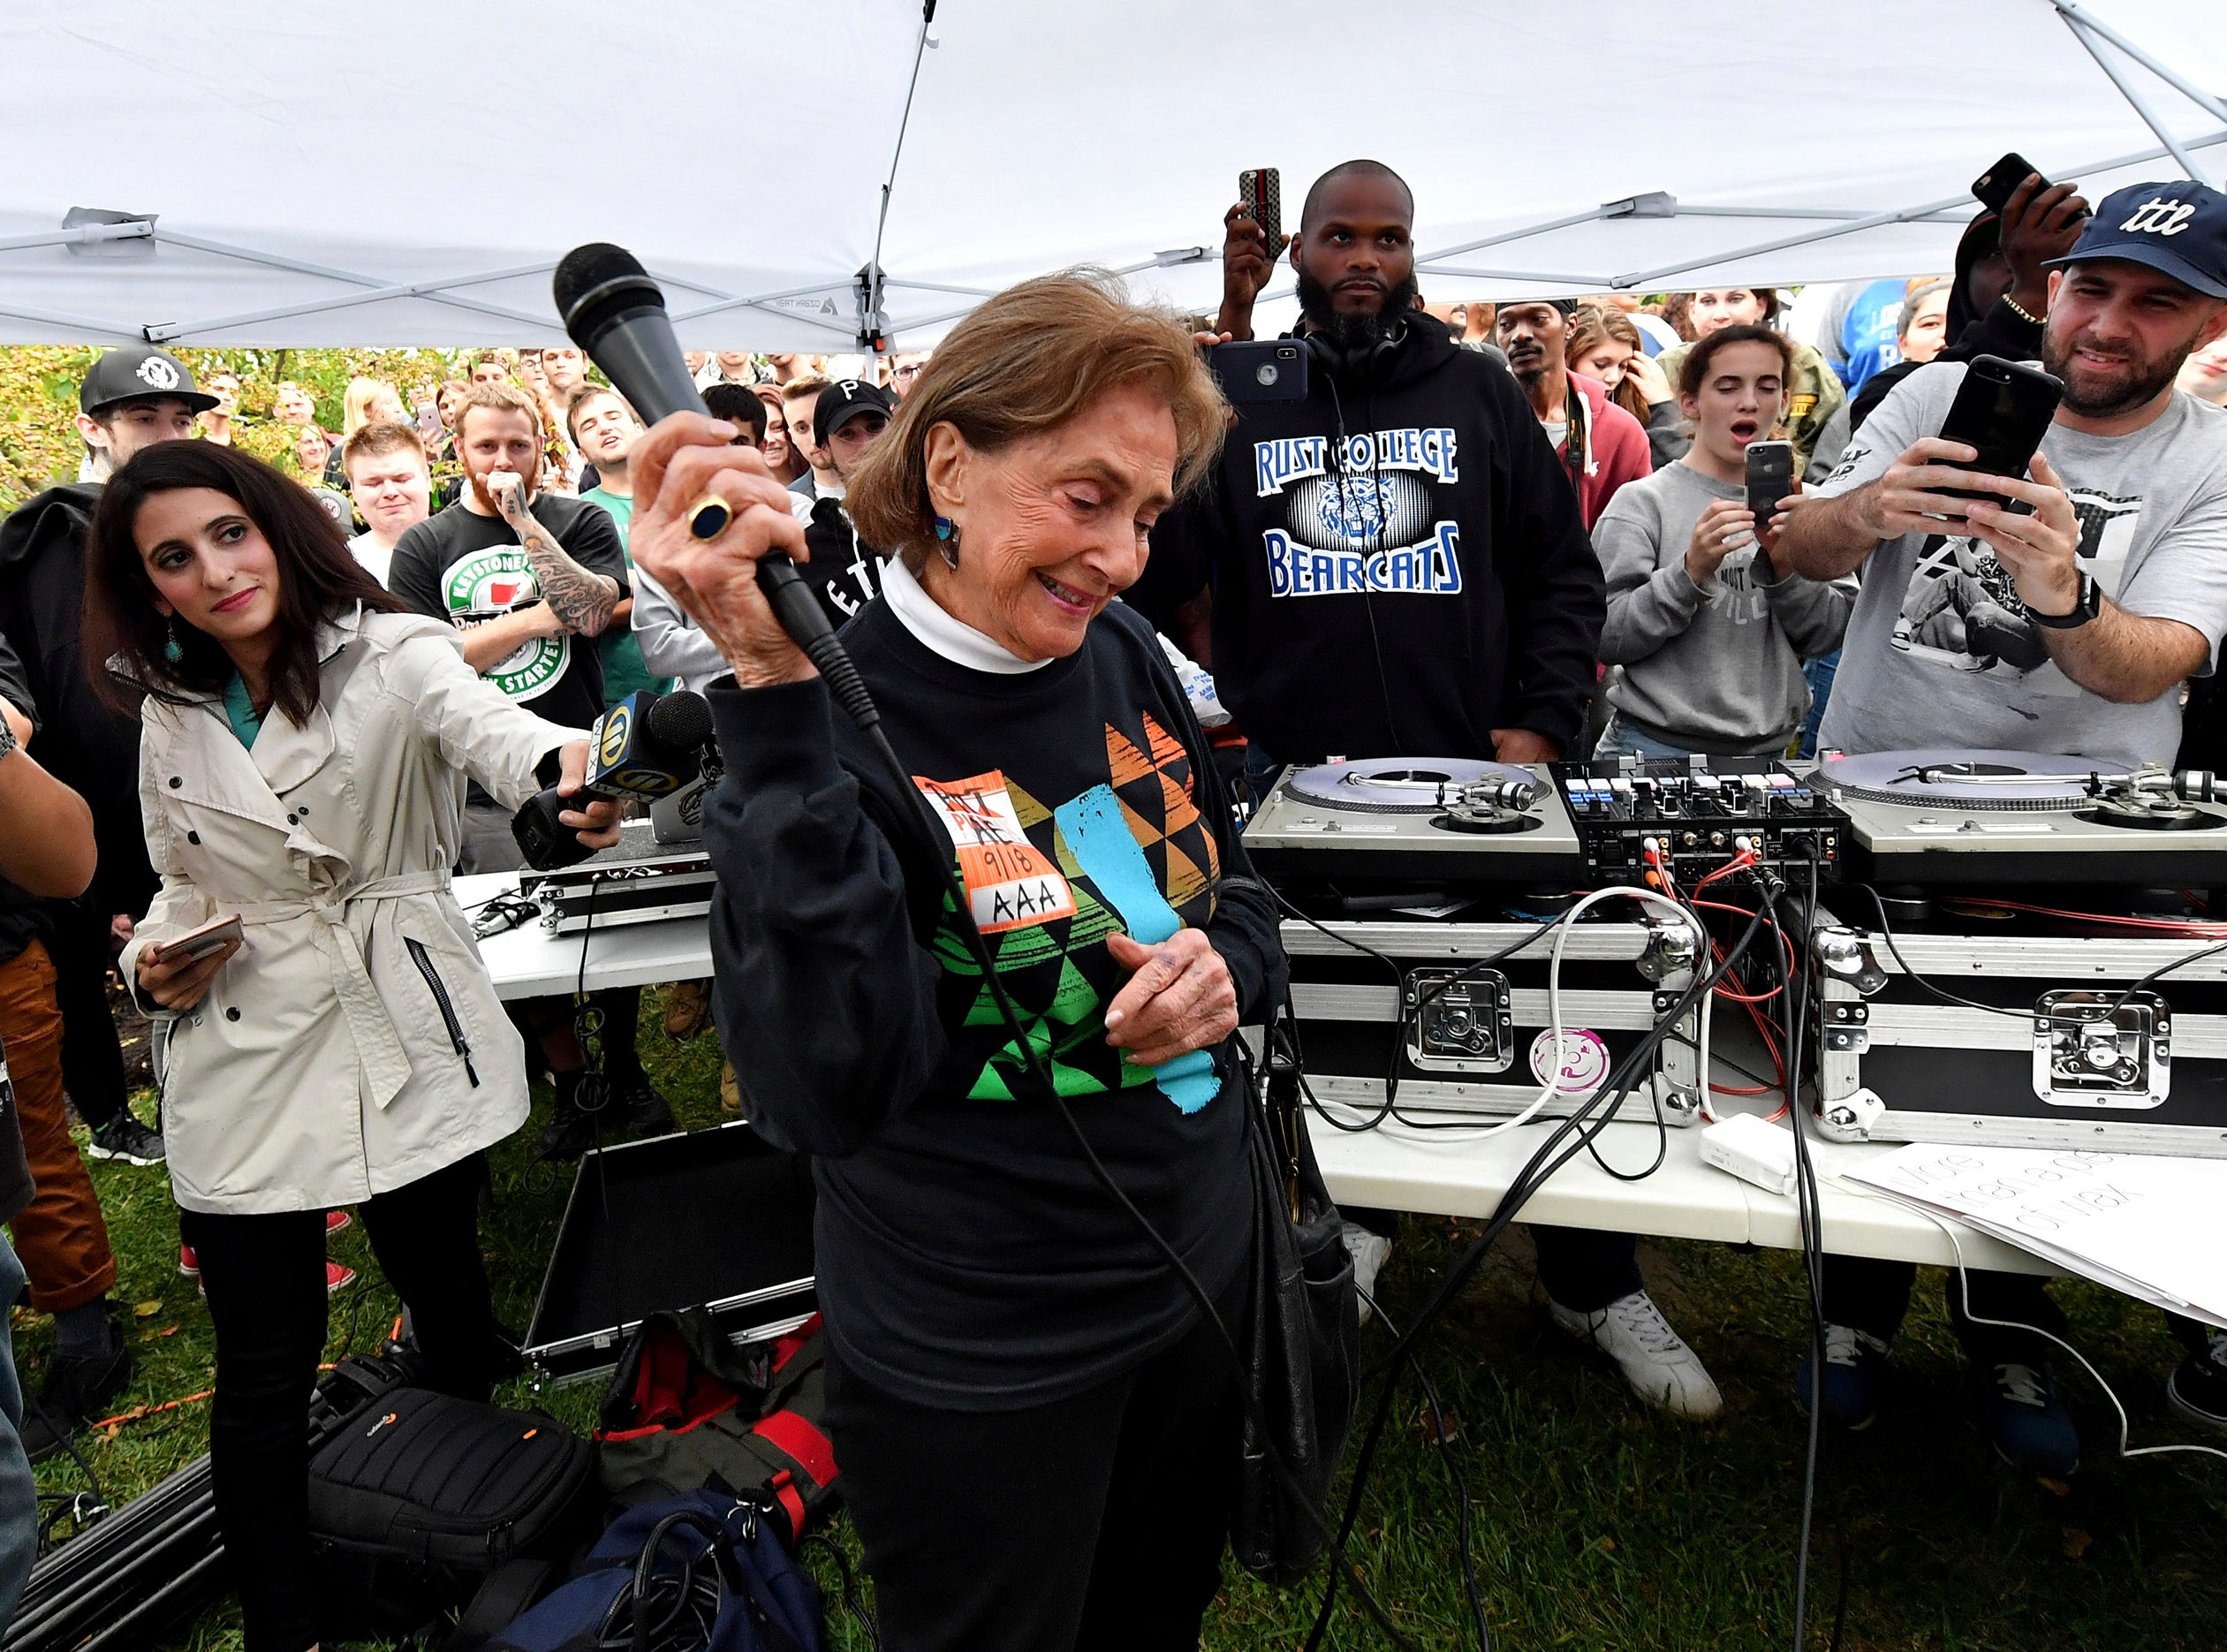 "Marcia Weiss, grandmother of rapper Mac Miller, pauses as the crowd cheers for her during a vigil for the rapper Tuesday, Sept. 11, 2018 at Blue Slide Park in Pittsburgh, Pa. His debut studio album was named ""Blue Slide Park."" (Matt Freed/Post-Gazette via AP) ORG XMIT: PAPIT102"